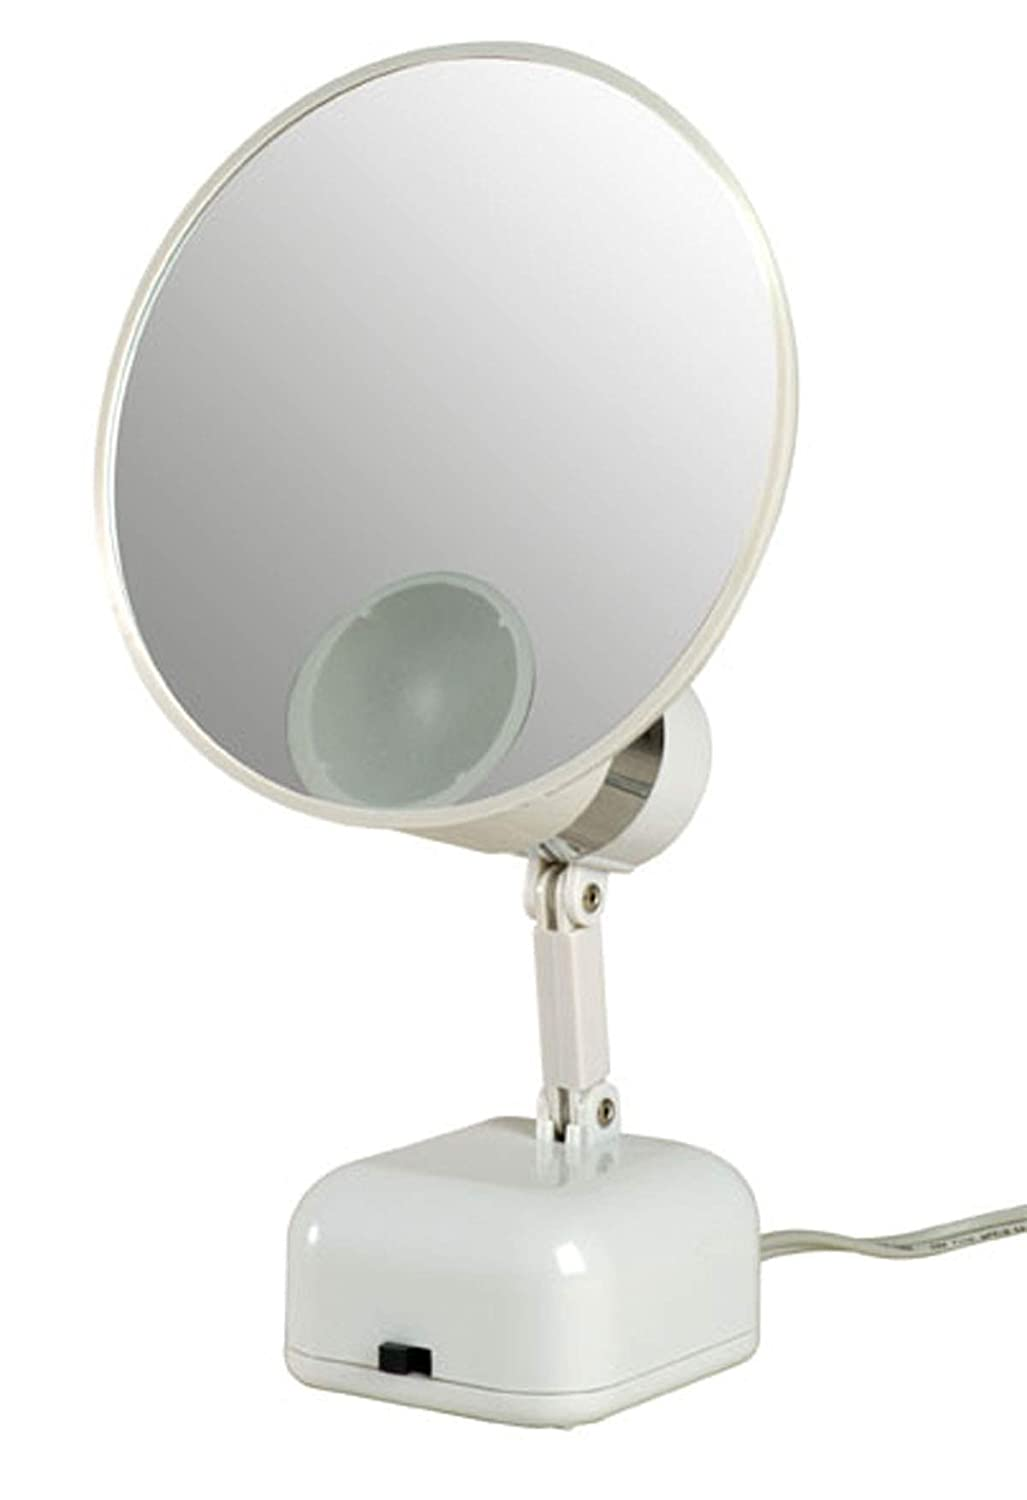 Floxite New 10x Supervision Magnifying Led Lighted Vanity Mirror Detaches for Travel, Dove, 6 Pound